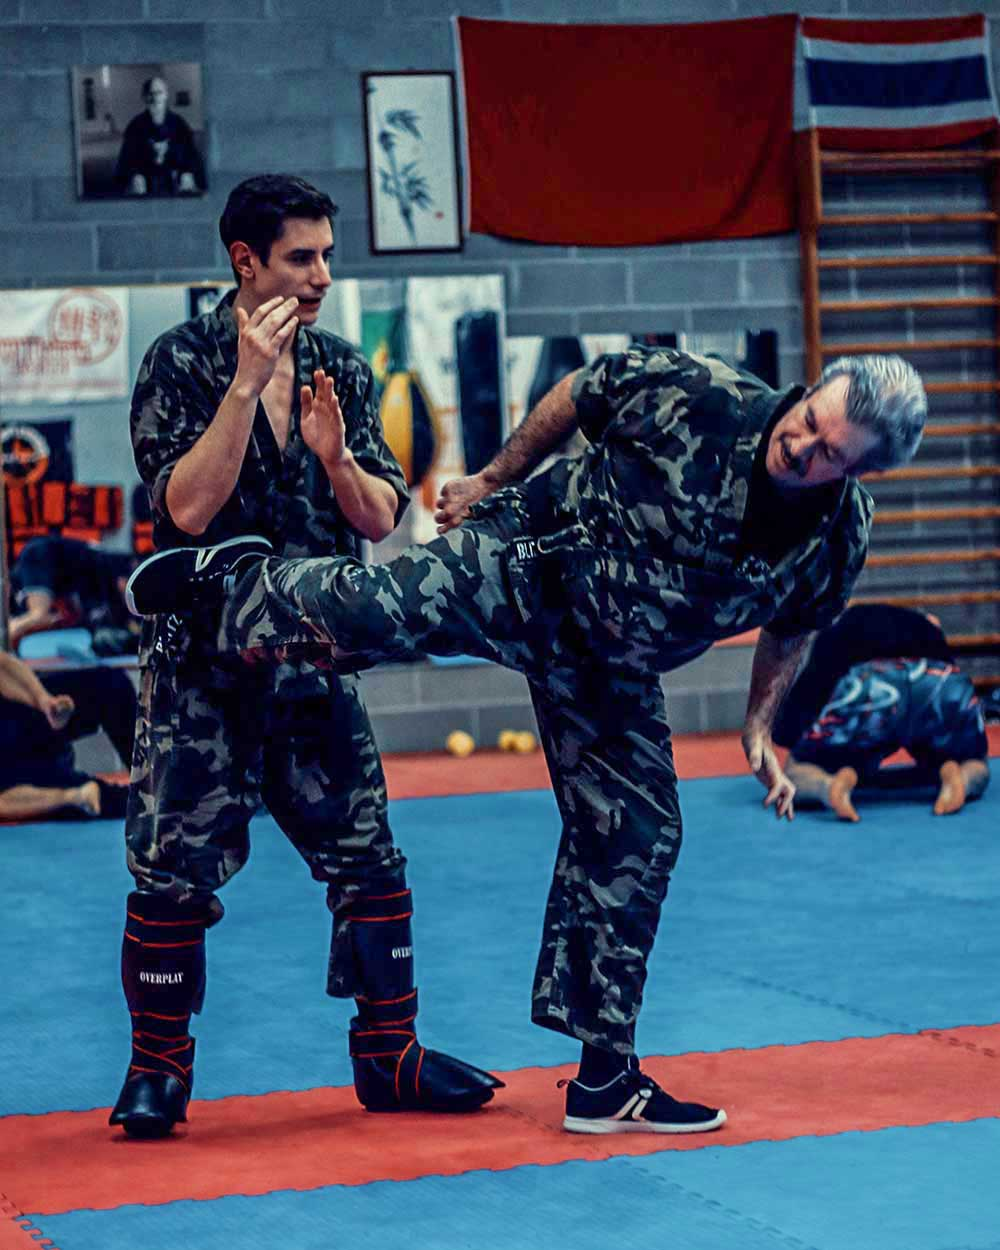 Krav Maga Training spinning back kick during a fight | FOTO | PHOTOS